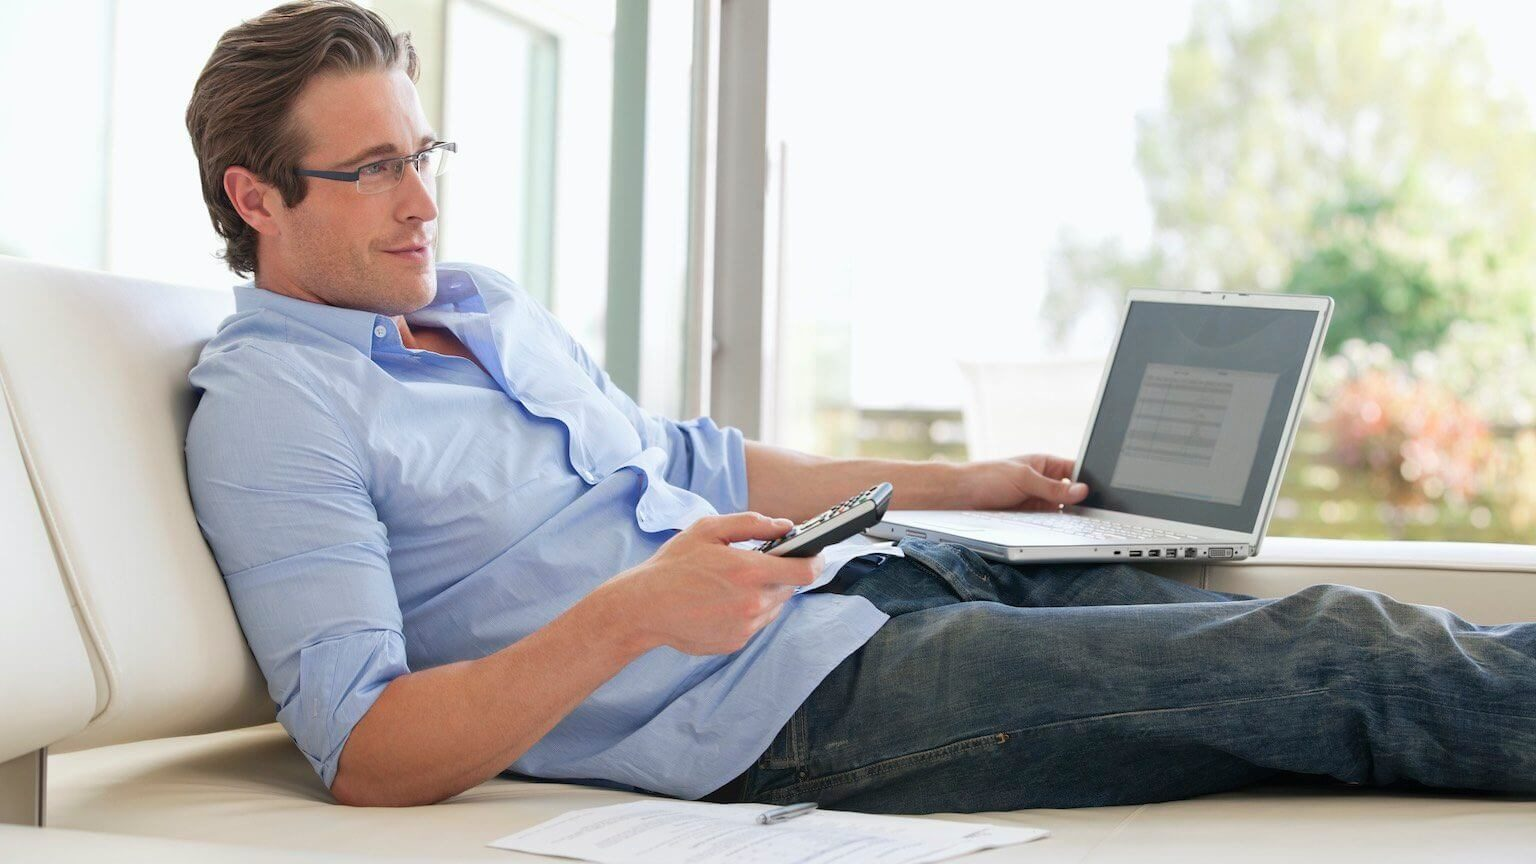 Man watching TV while working on his laptop